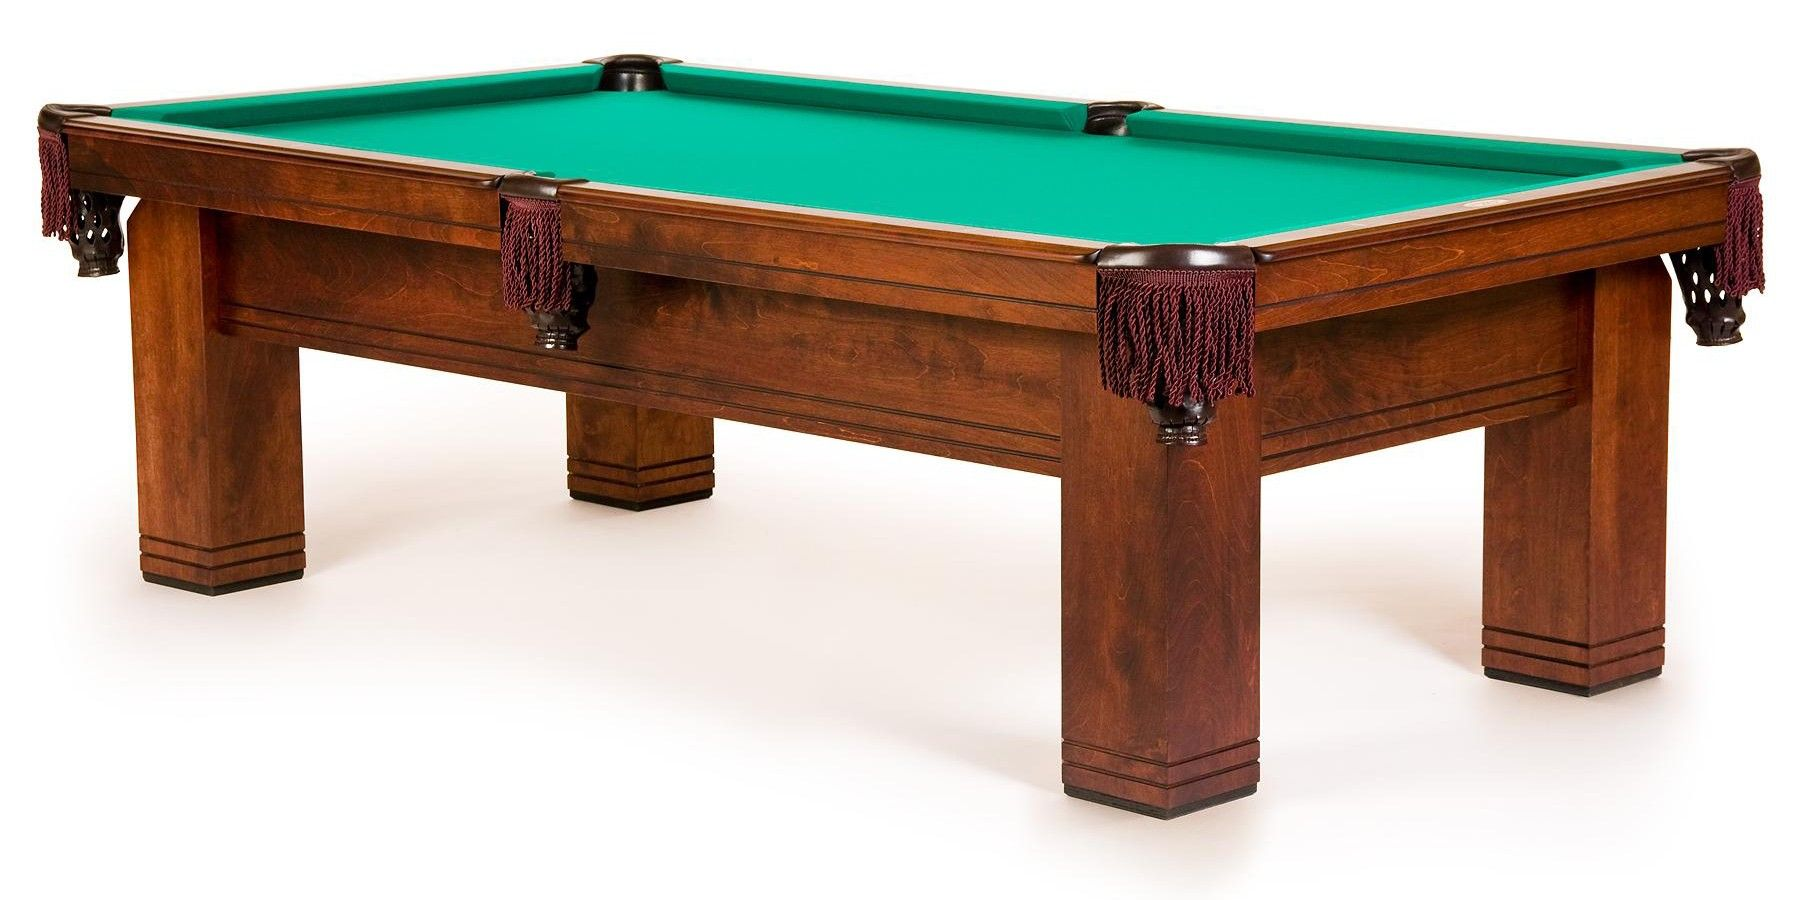 This Benchmark Billiards Richland Pool Table Compliments The Contemporary Styling Crafted From American Birch Wood And Stained In A Pool Table Pool Table Cloth